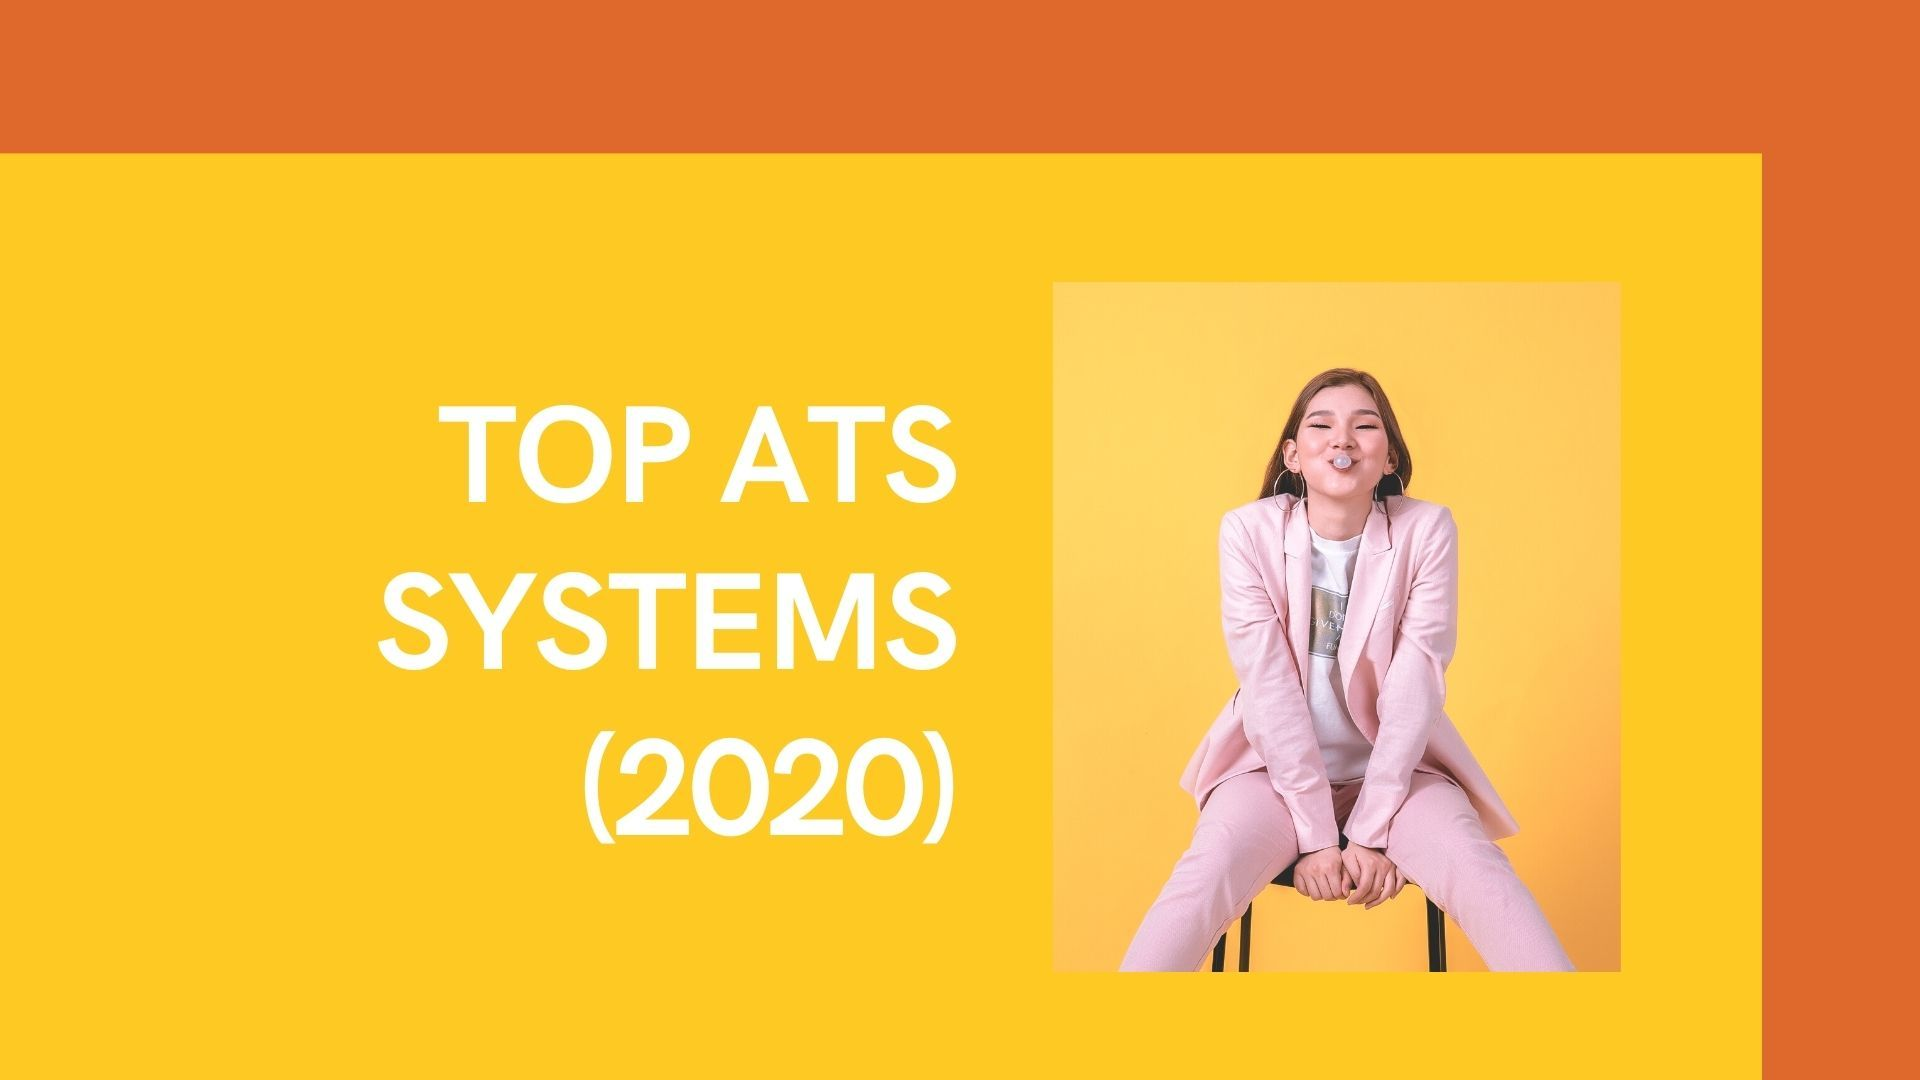 Top ATS systems (2020) image